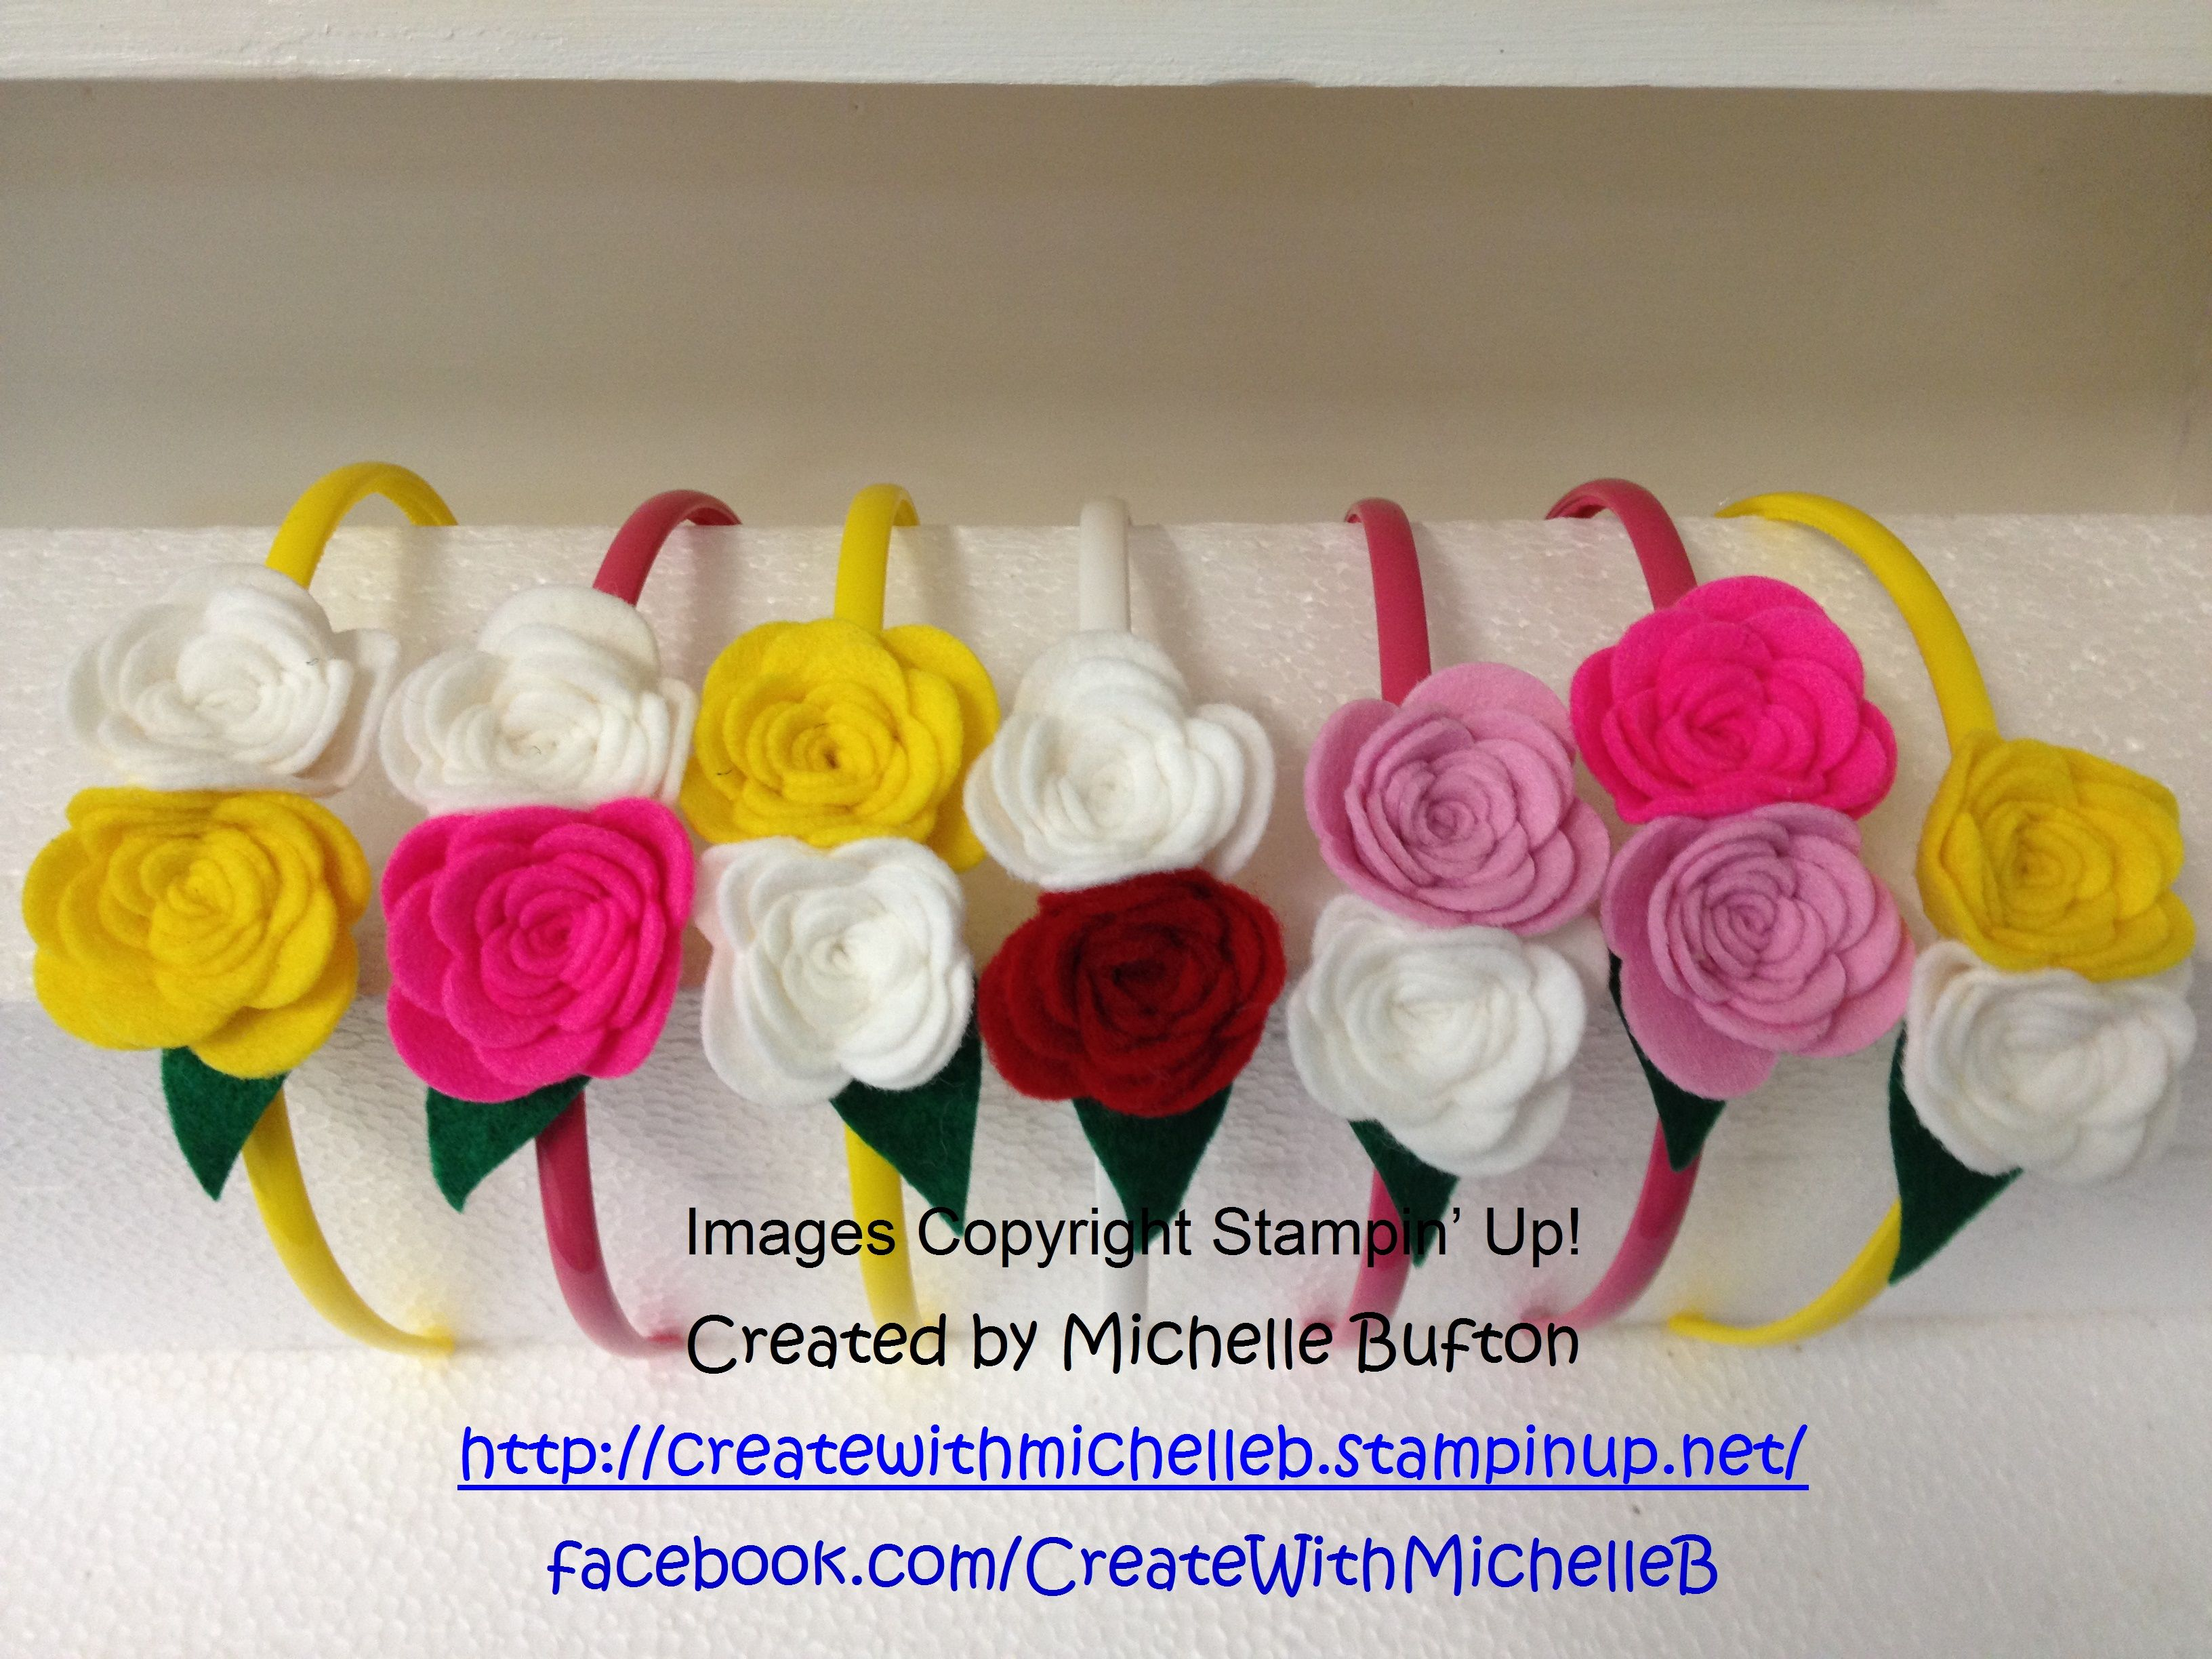 Head bands created with the New Spiral Flower Originals Die by Stampin' Up!. Available to order from the 28th January. CreatewithMichelleB | Michelle Bufton – Independent Stampin' Up! Demonstrator | http://createwithmichelleb.stampinup.net/ | https://www.facebook.com/CreateWithMichelleB